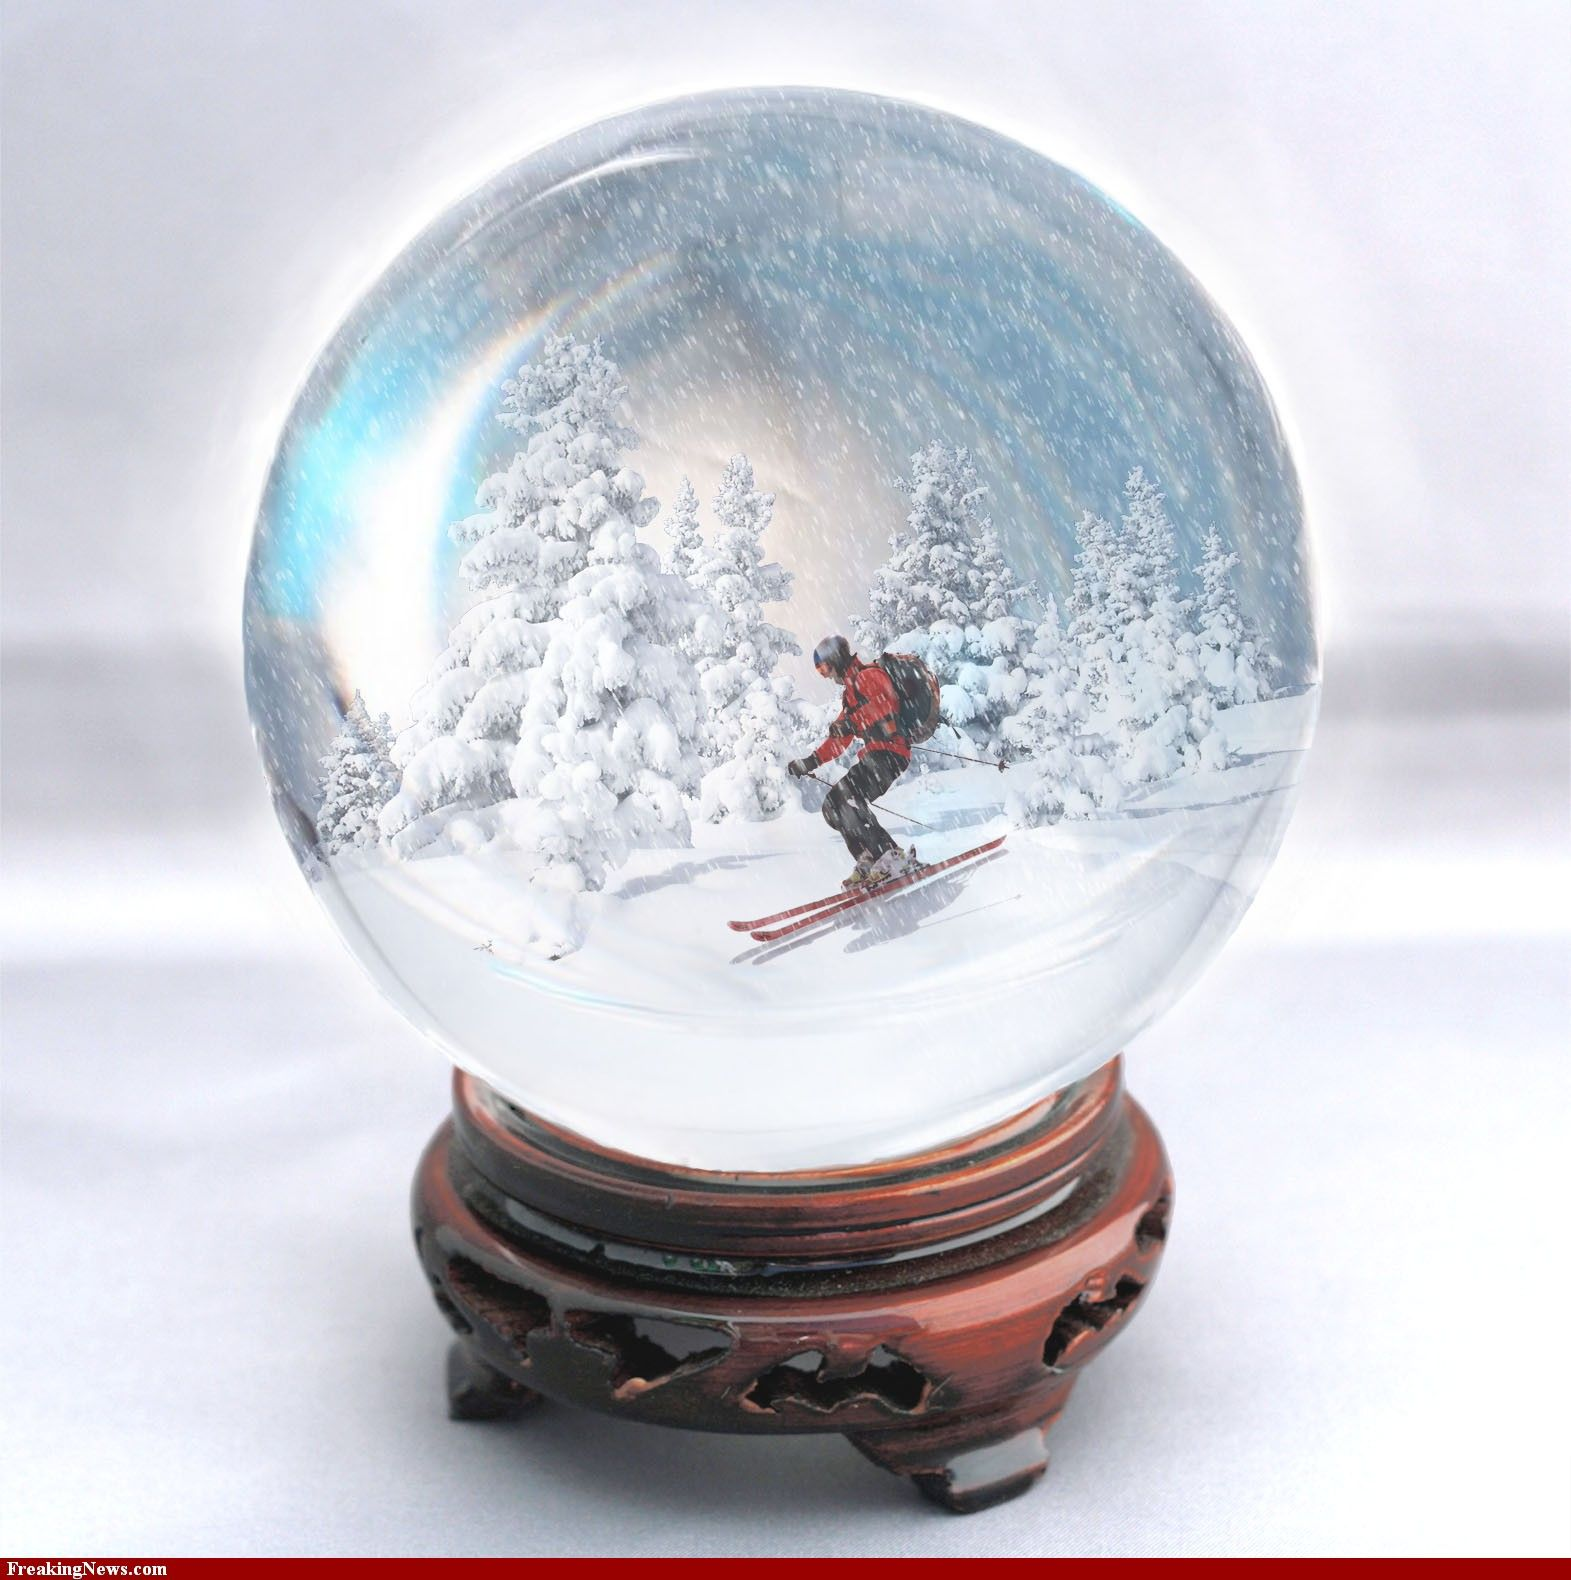 snow globes | Snow Globes Collection